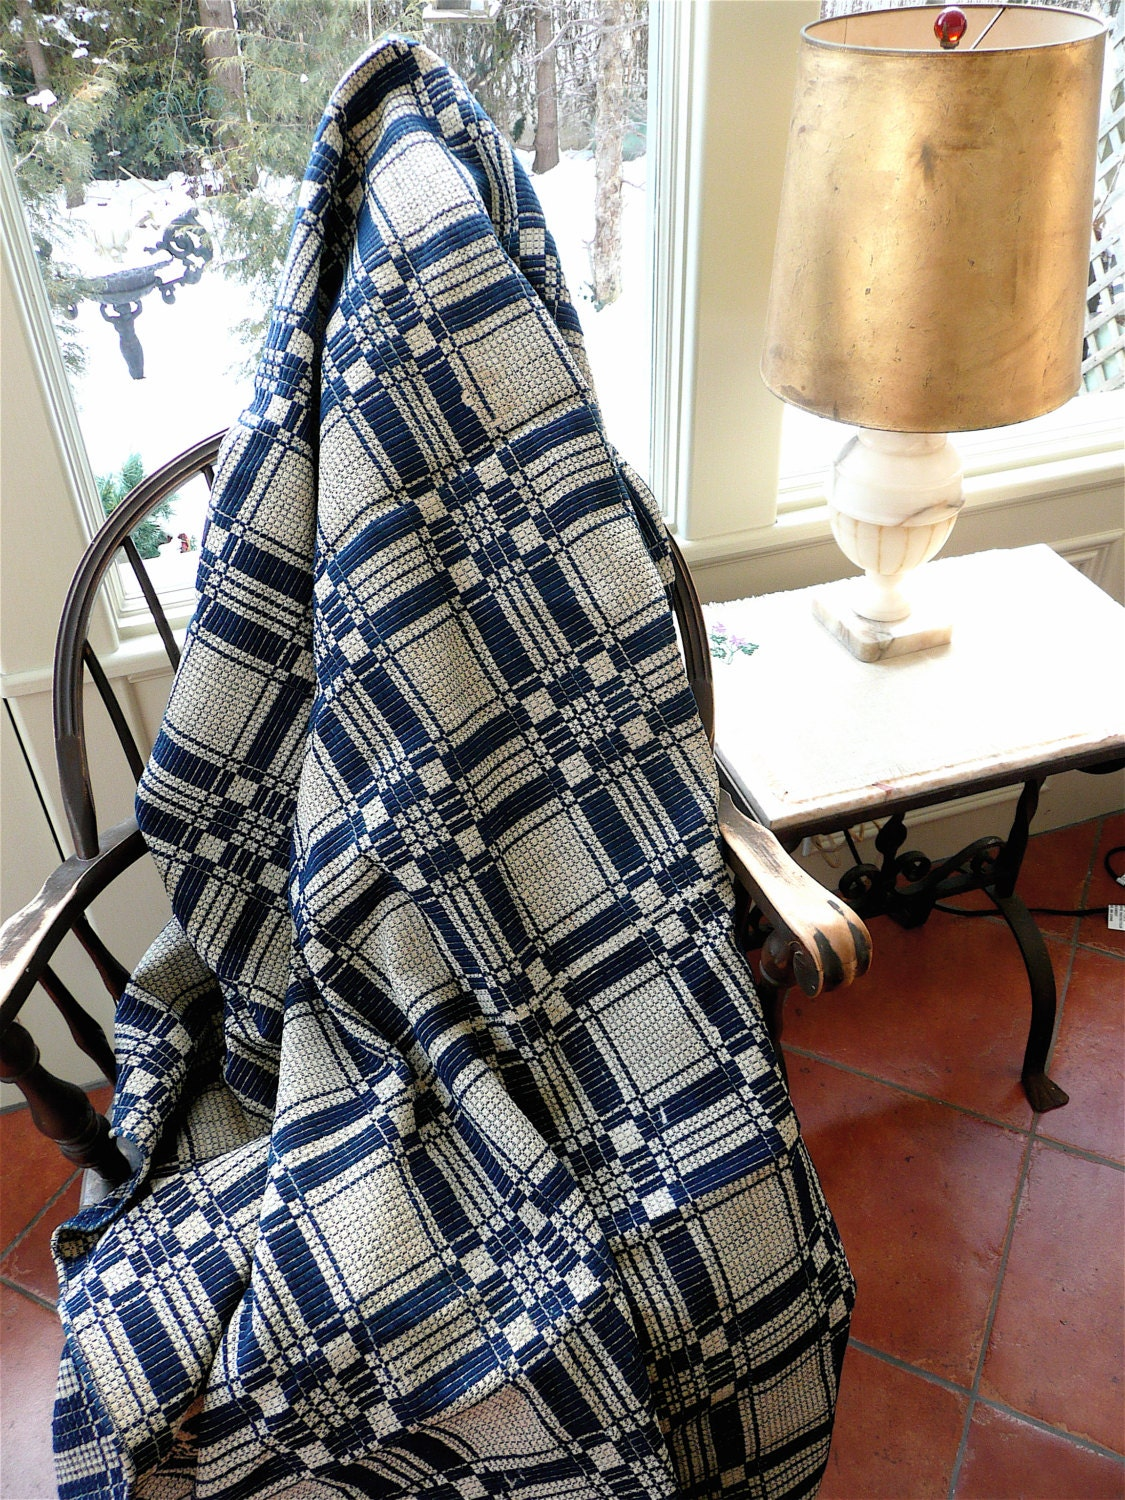 Antique Coverlet - American Coverlet - Blue and White Throw - Overshot Coverlet - Blue And White Quilt - Jacquard Coverlet - American Quilt - thekingsmistress